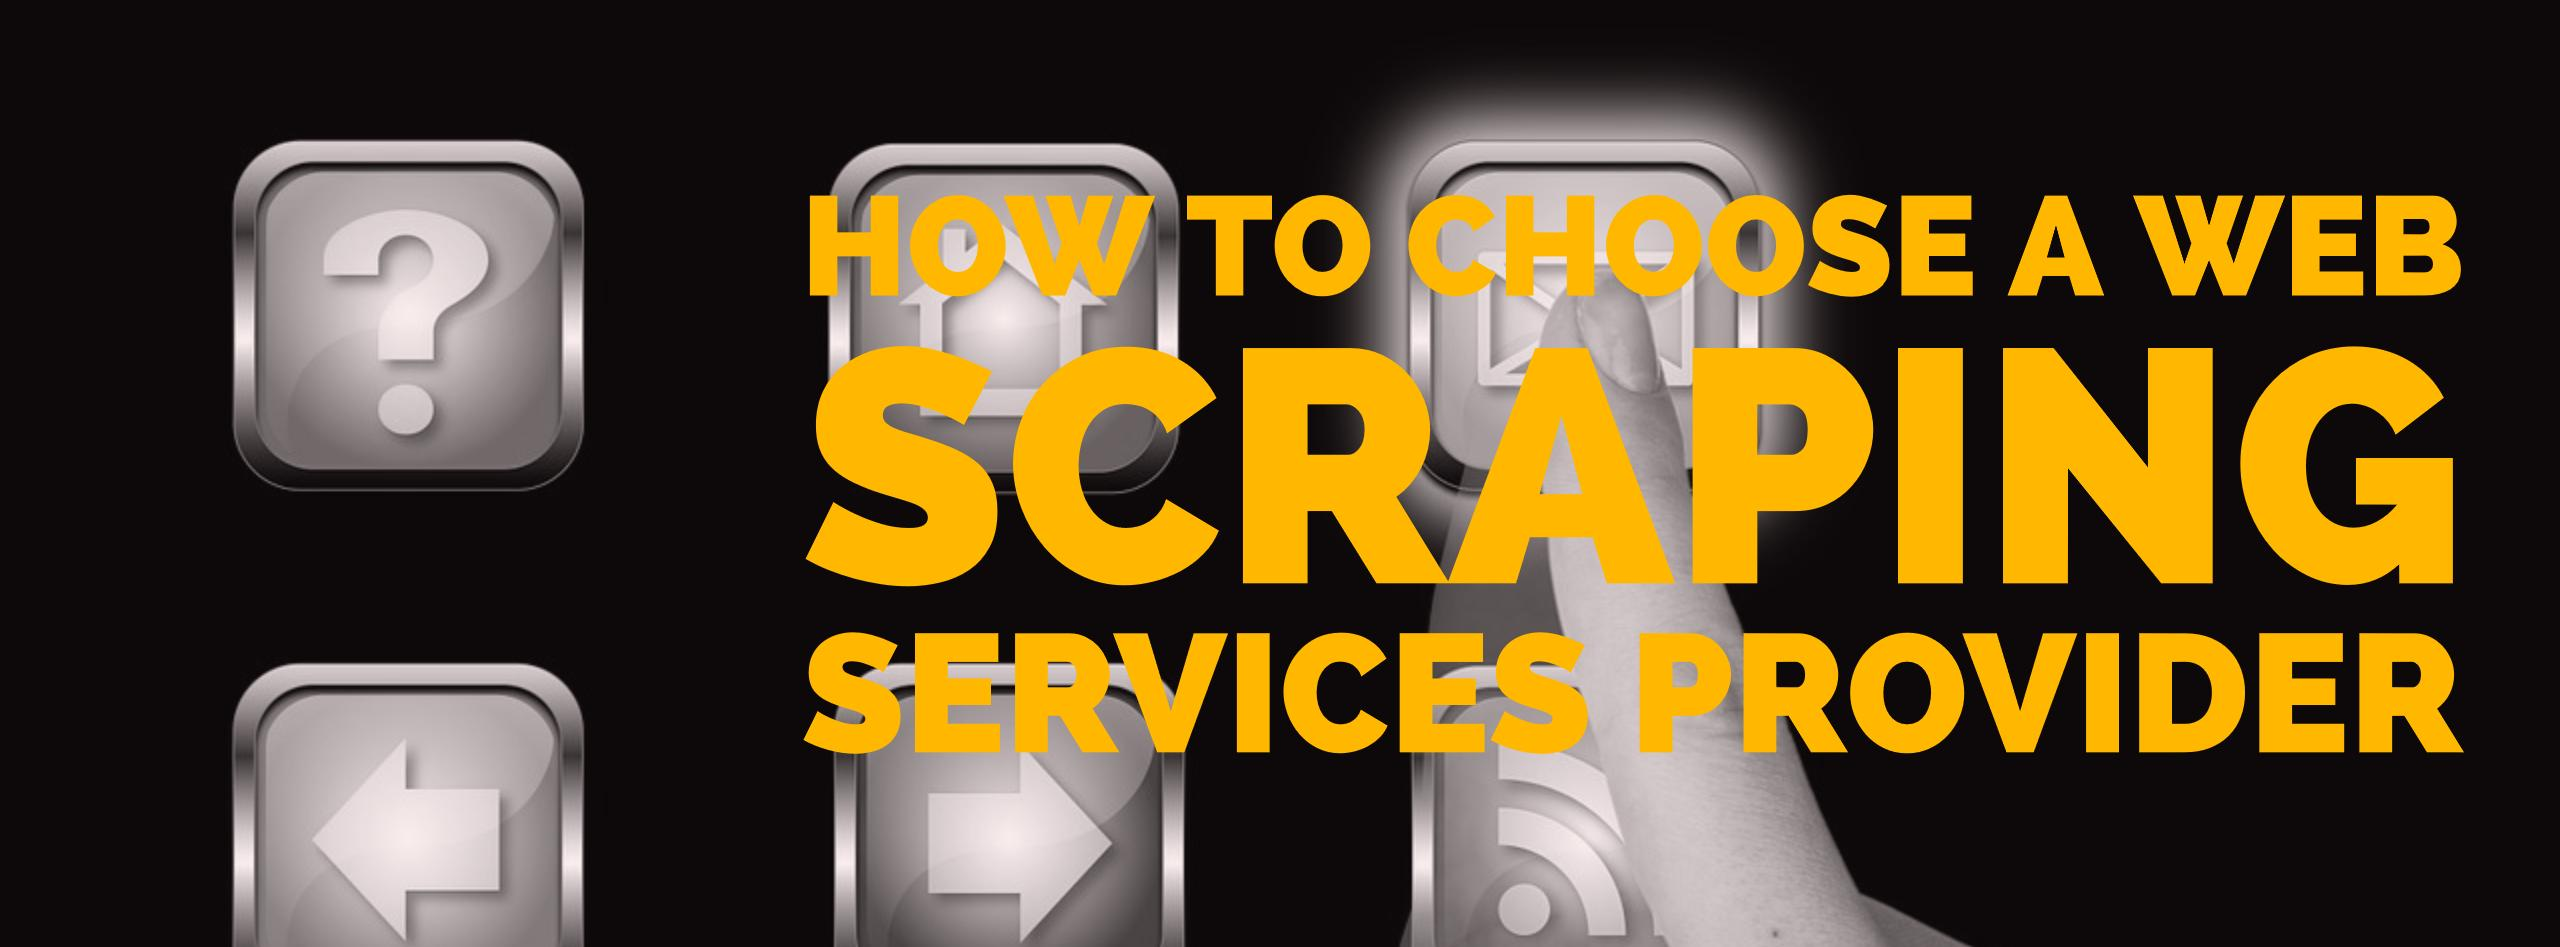 RFP for evaluating Web Scraping Services